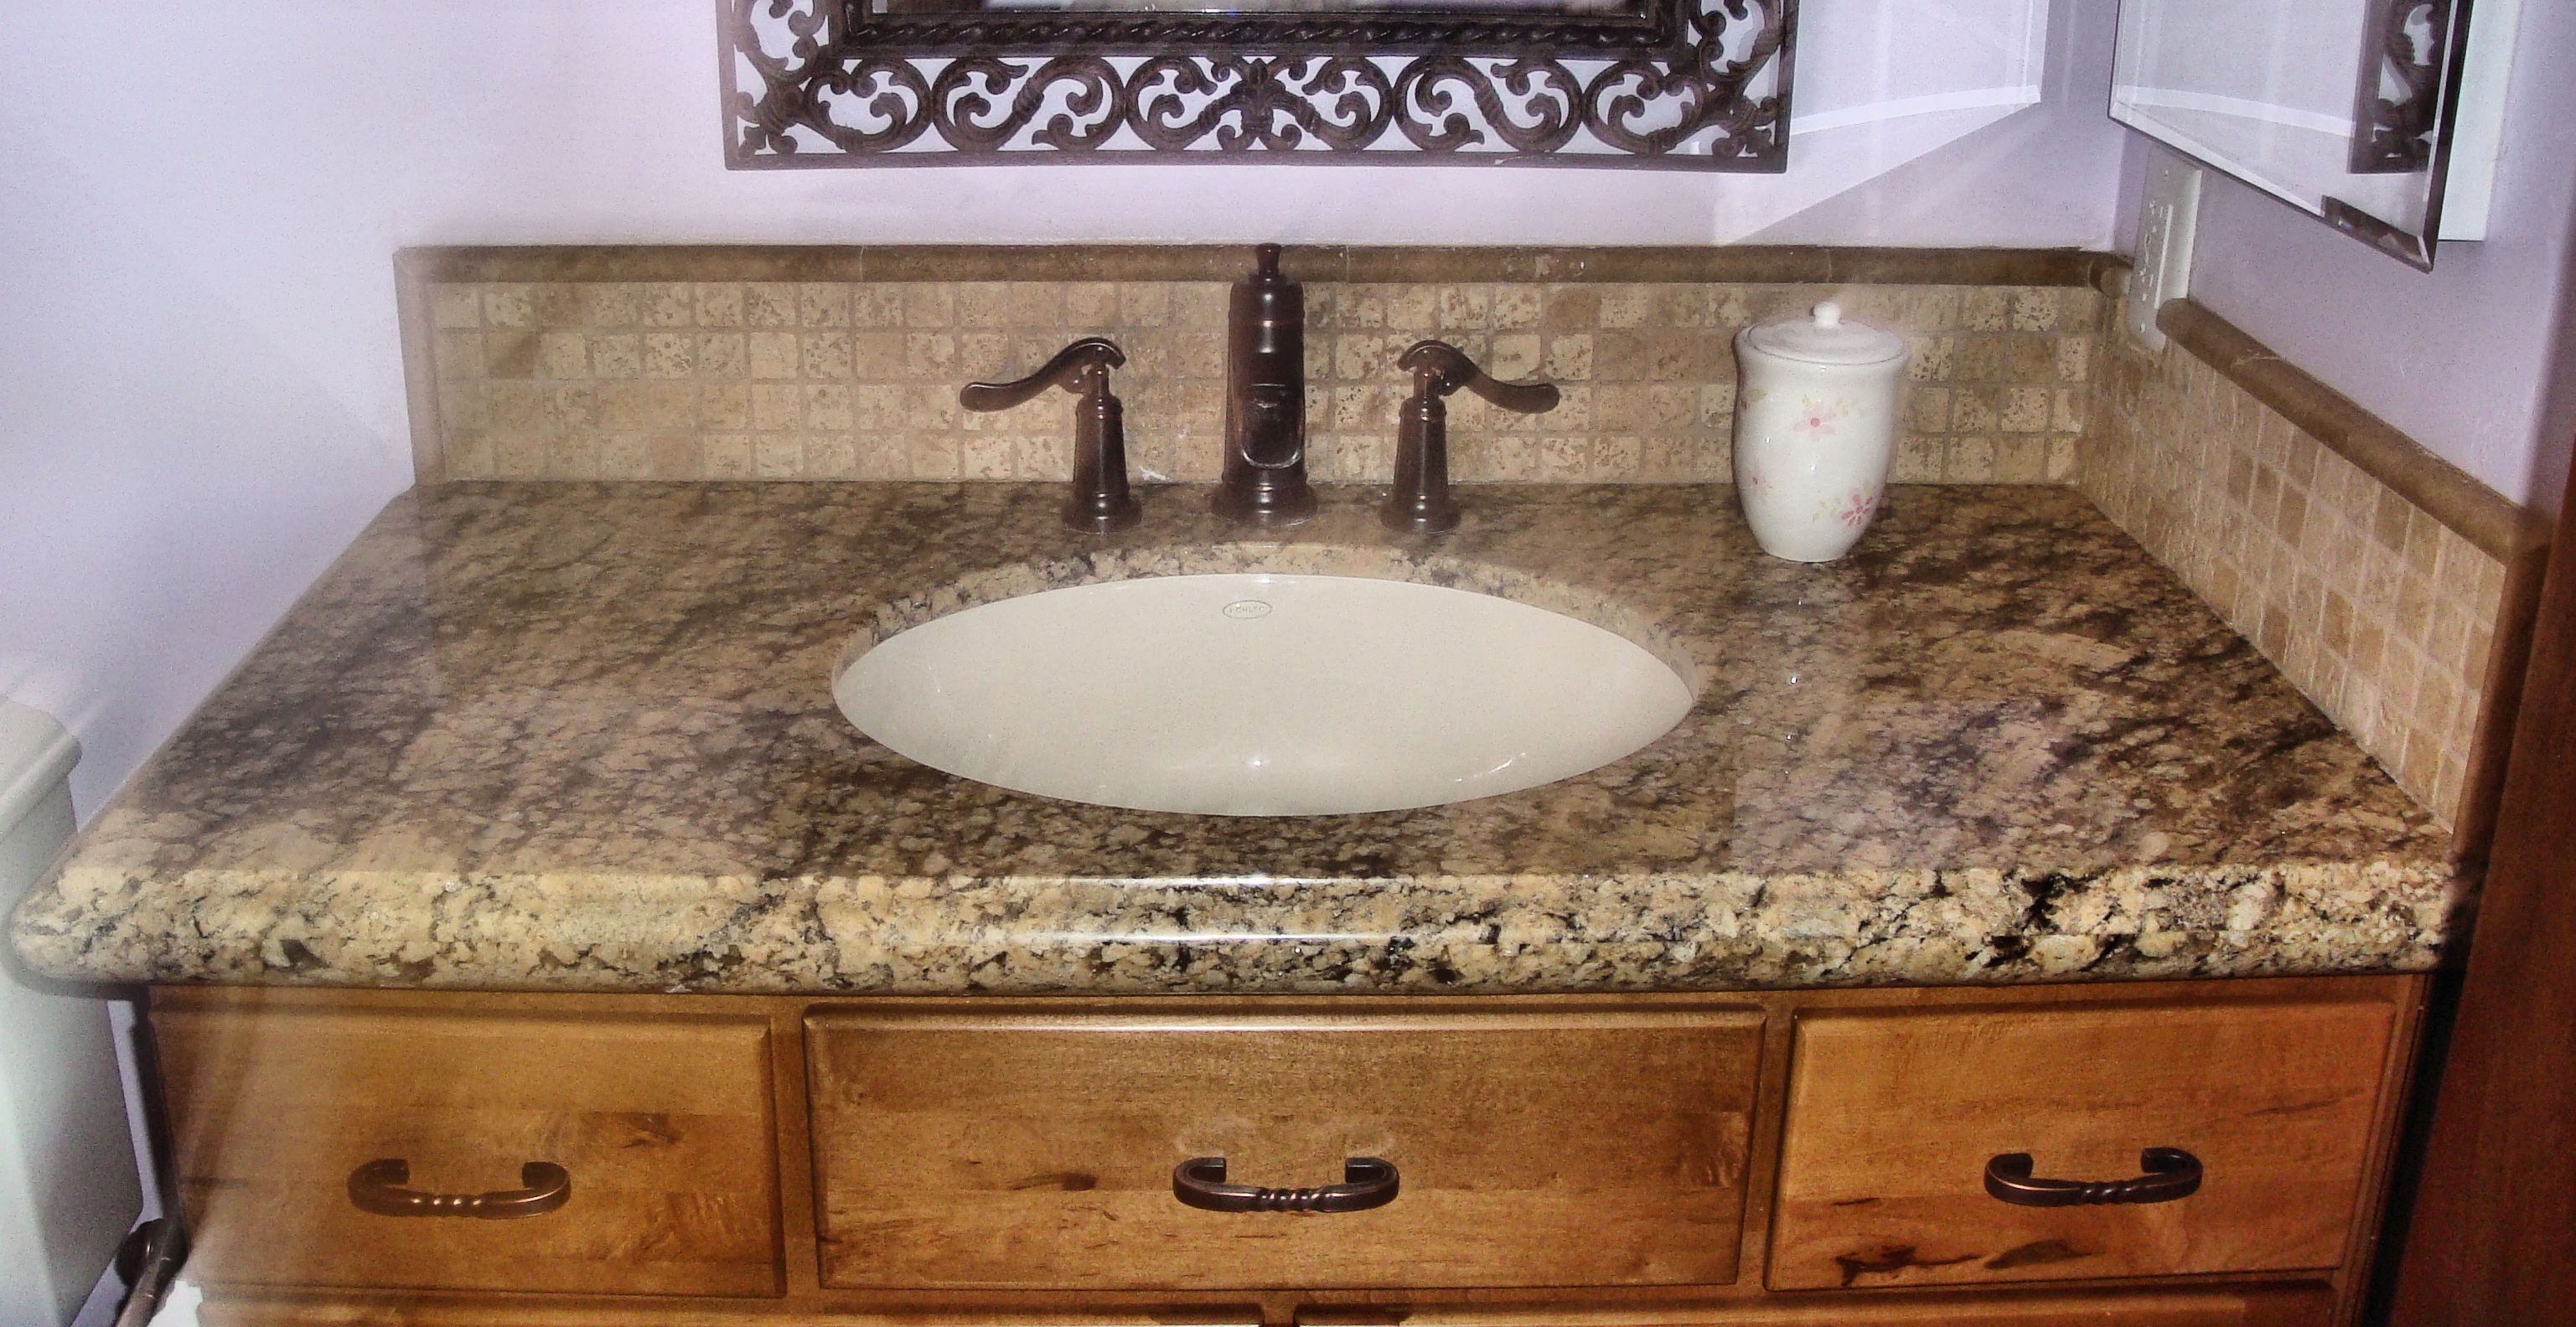 Granite Bathroom Countertops Beige Granite Bathroom Countertop Las Vegas Granite Countertops